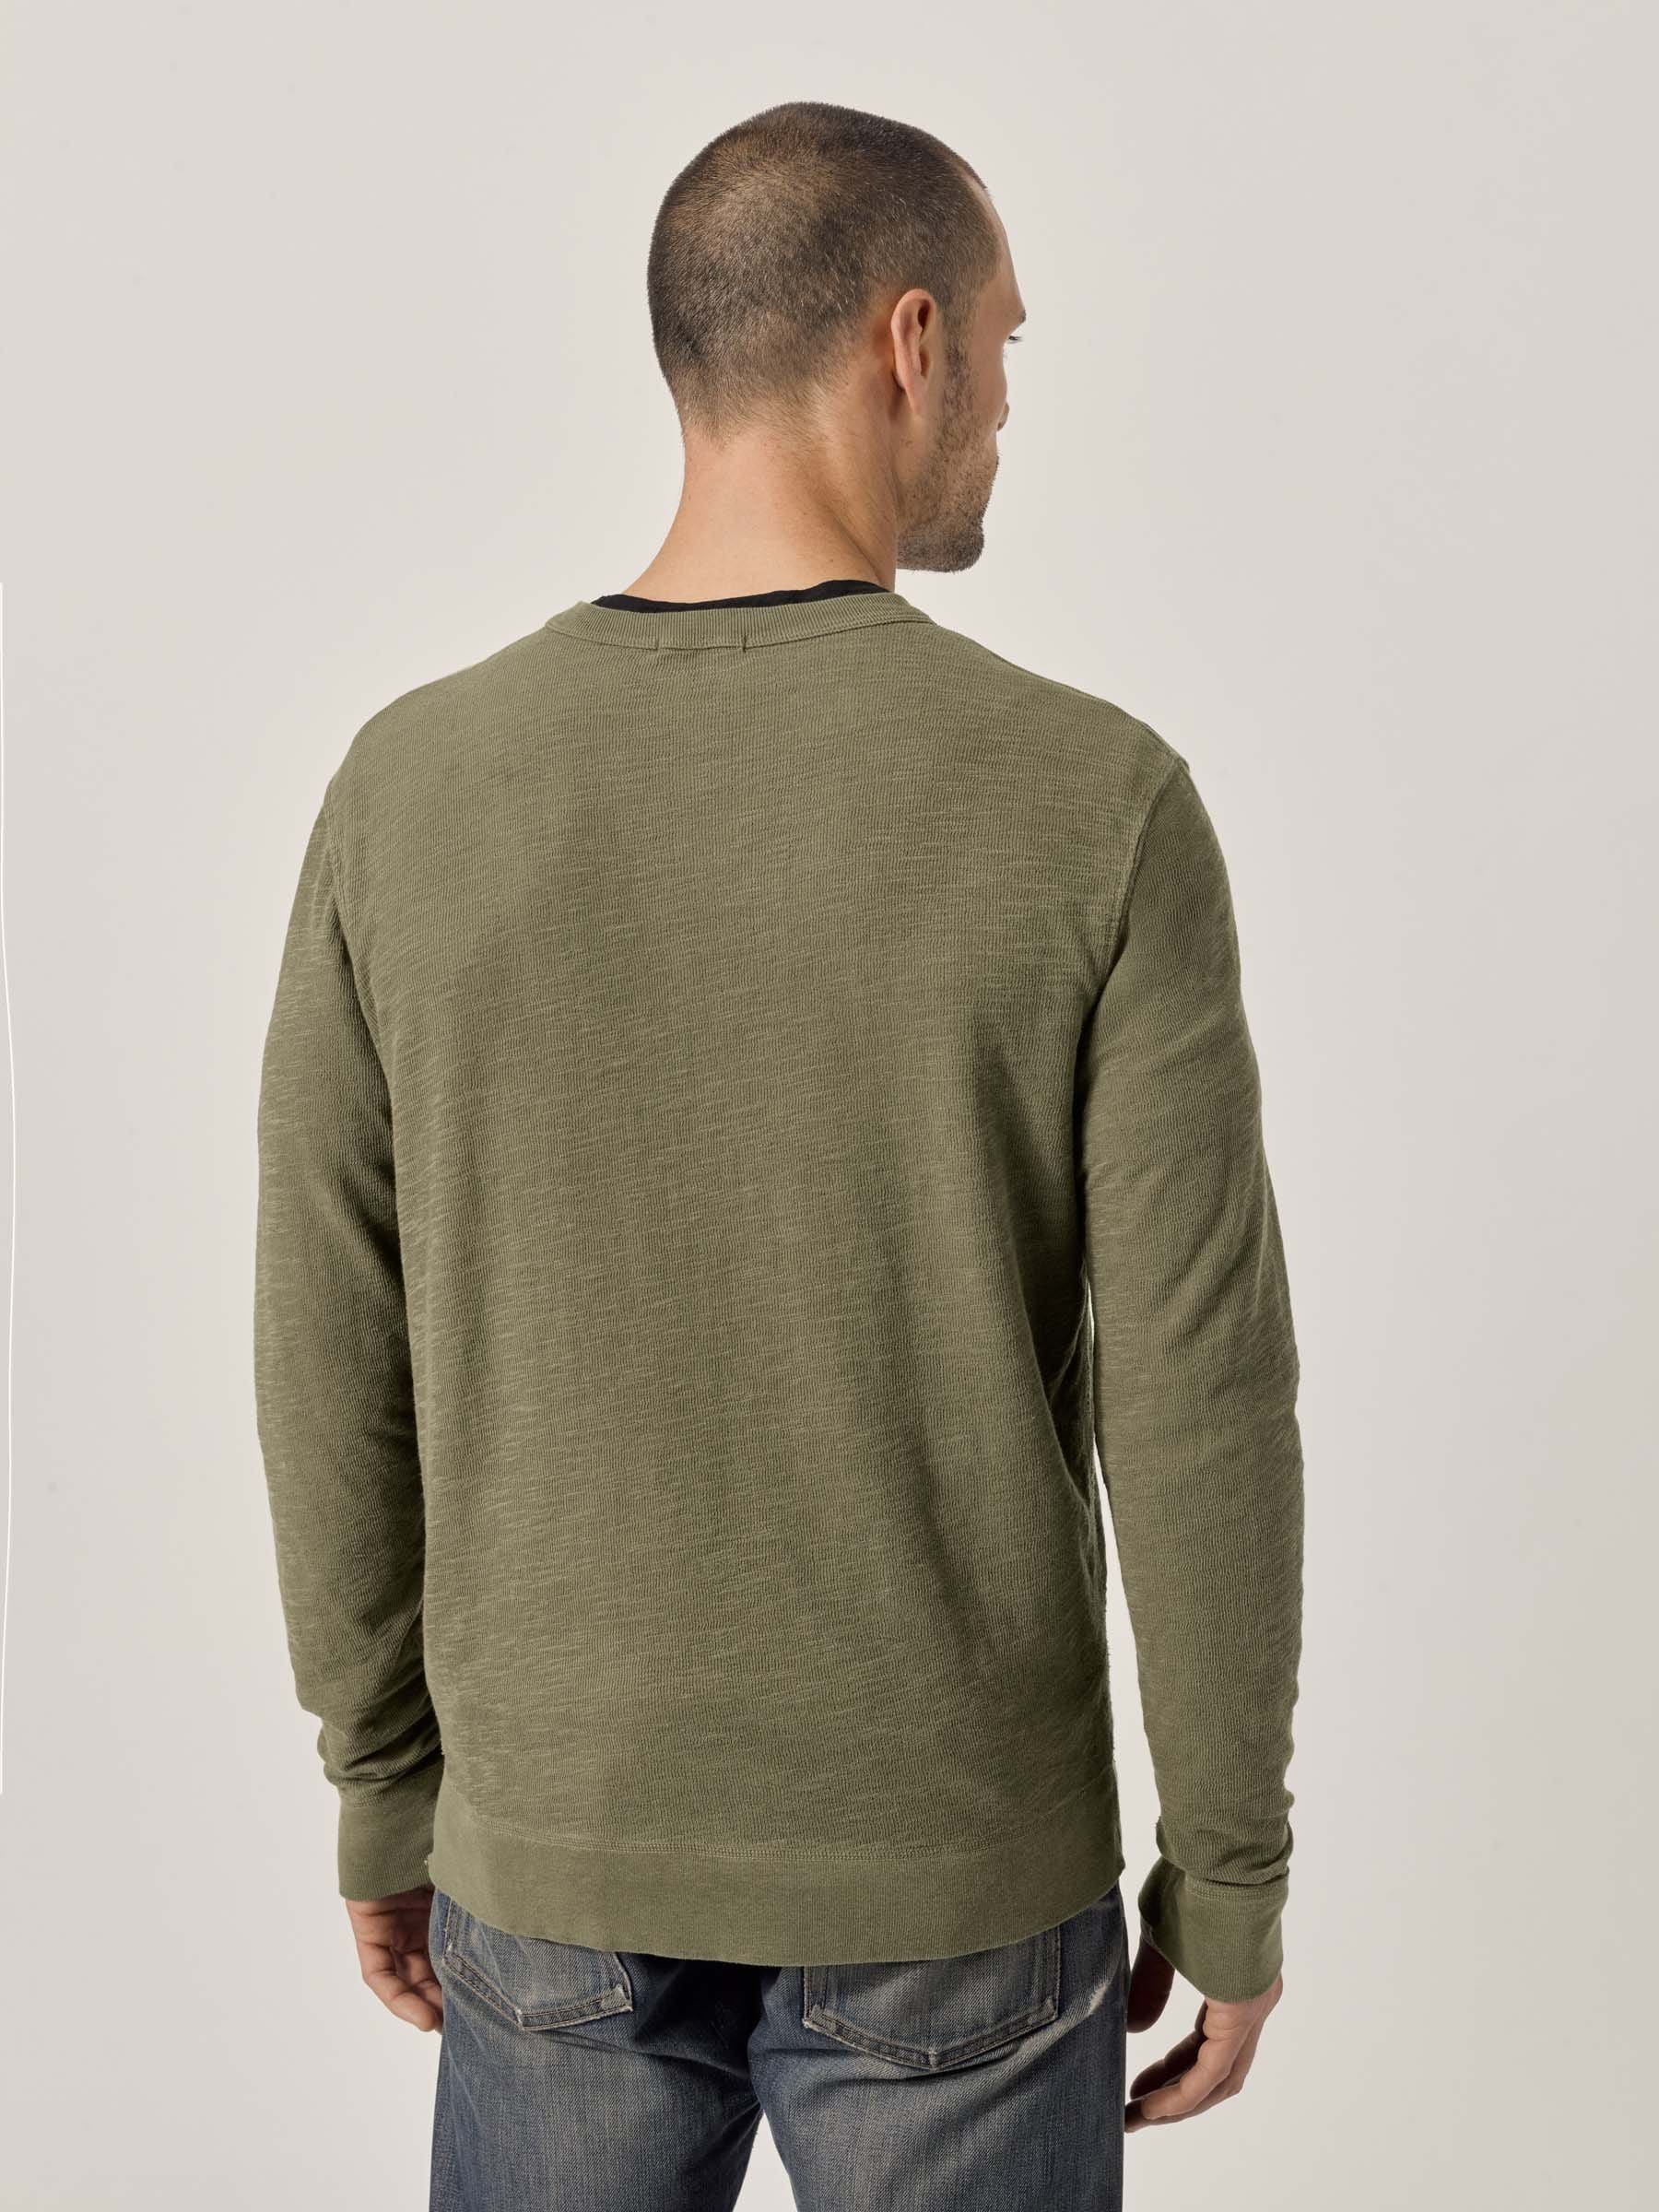 Buck Mason - Olive Lightweight Double Slub Sweatshirt